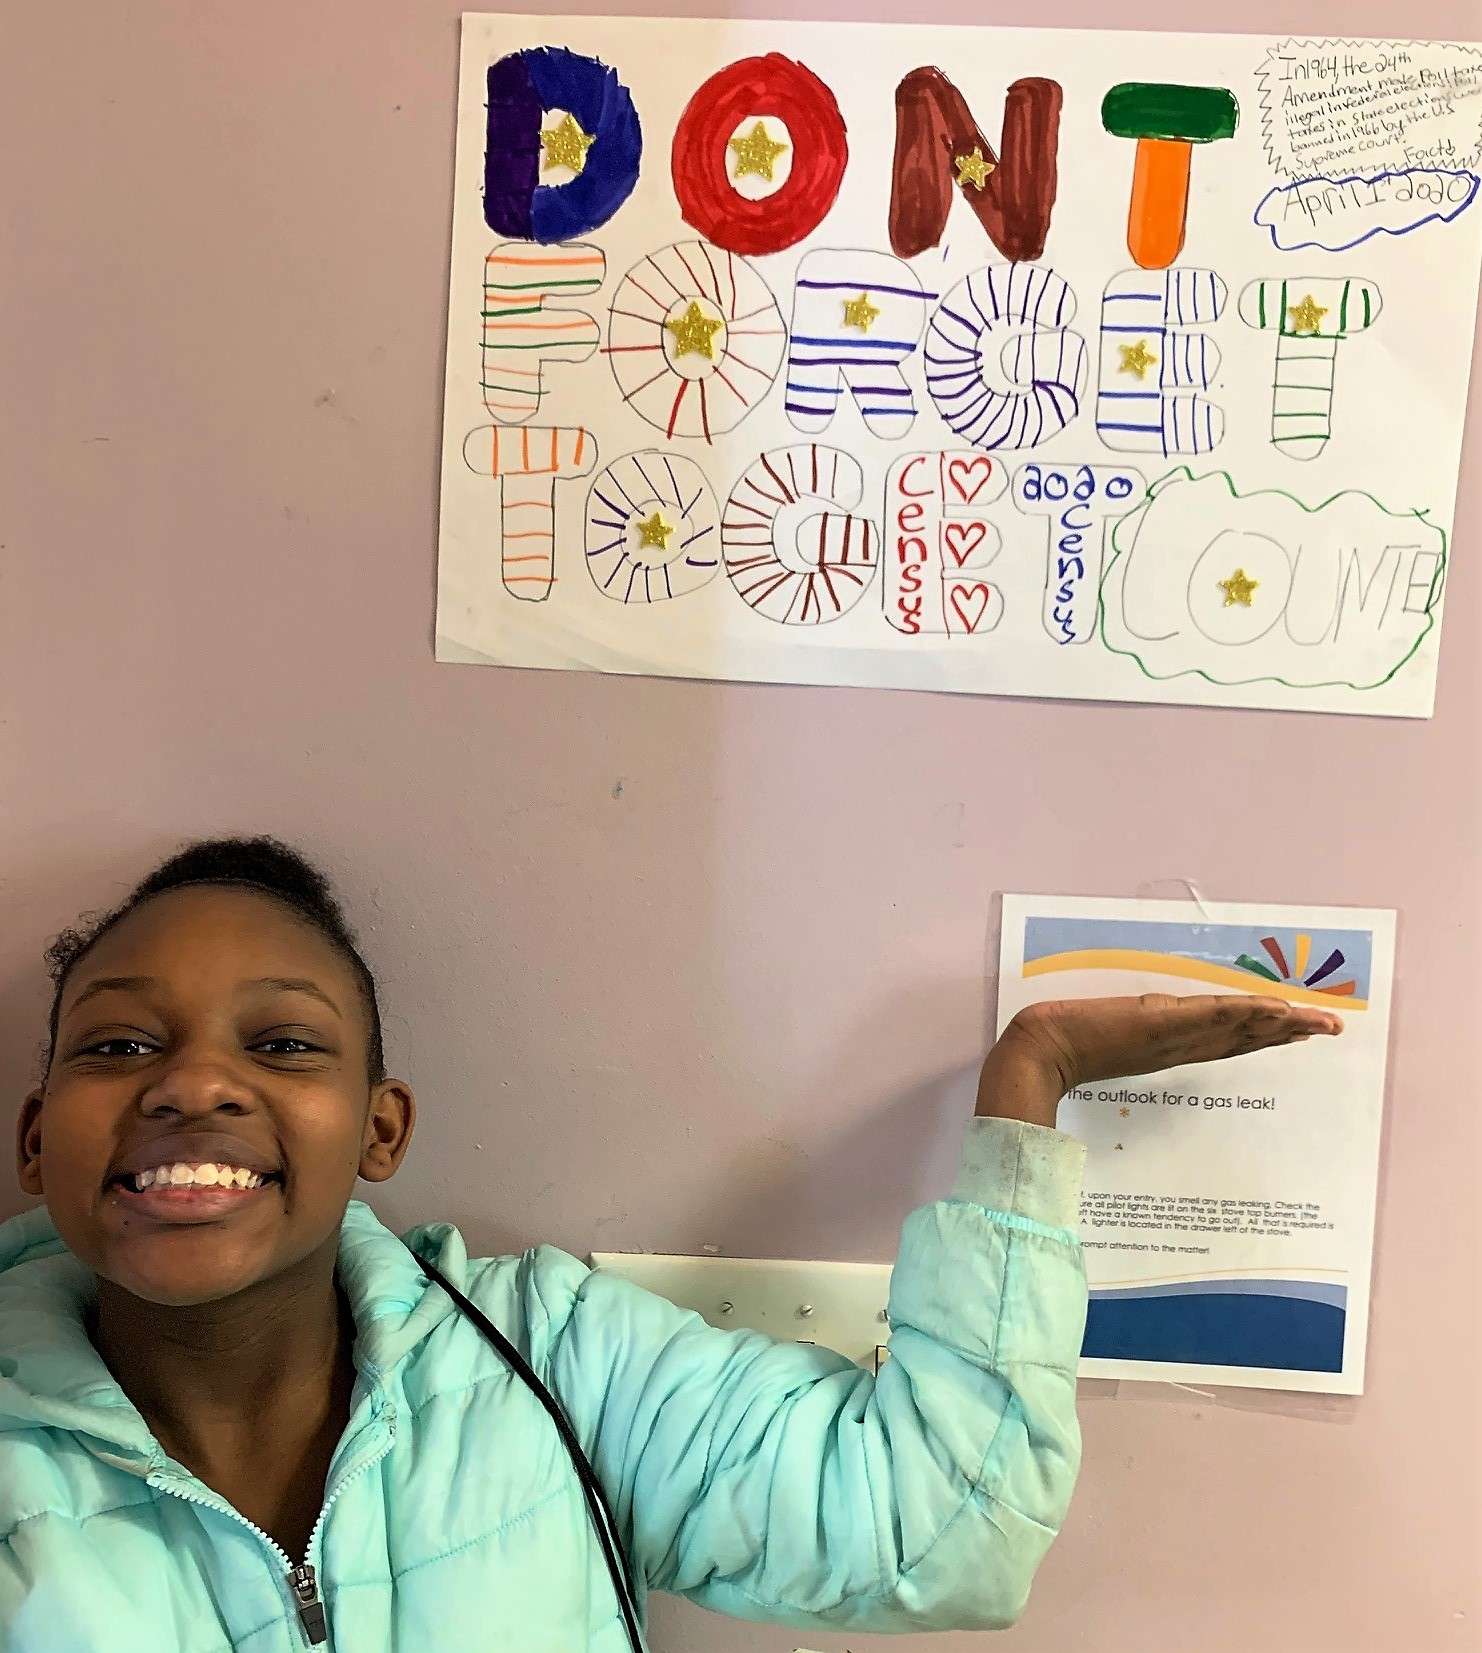 Participant in Grace UCC sign-making session, 2/22/20